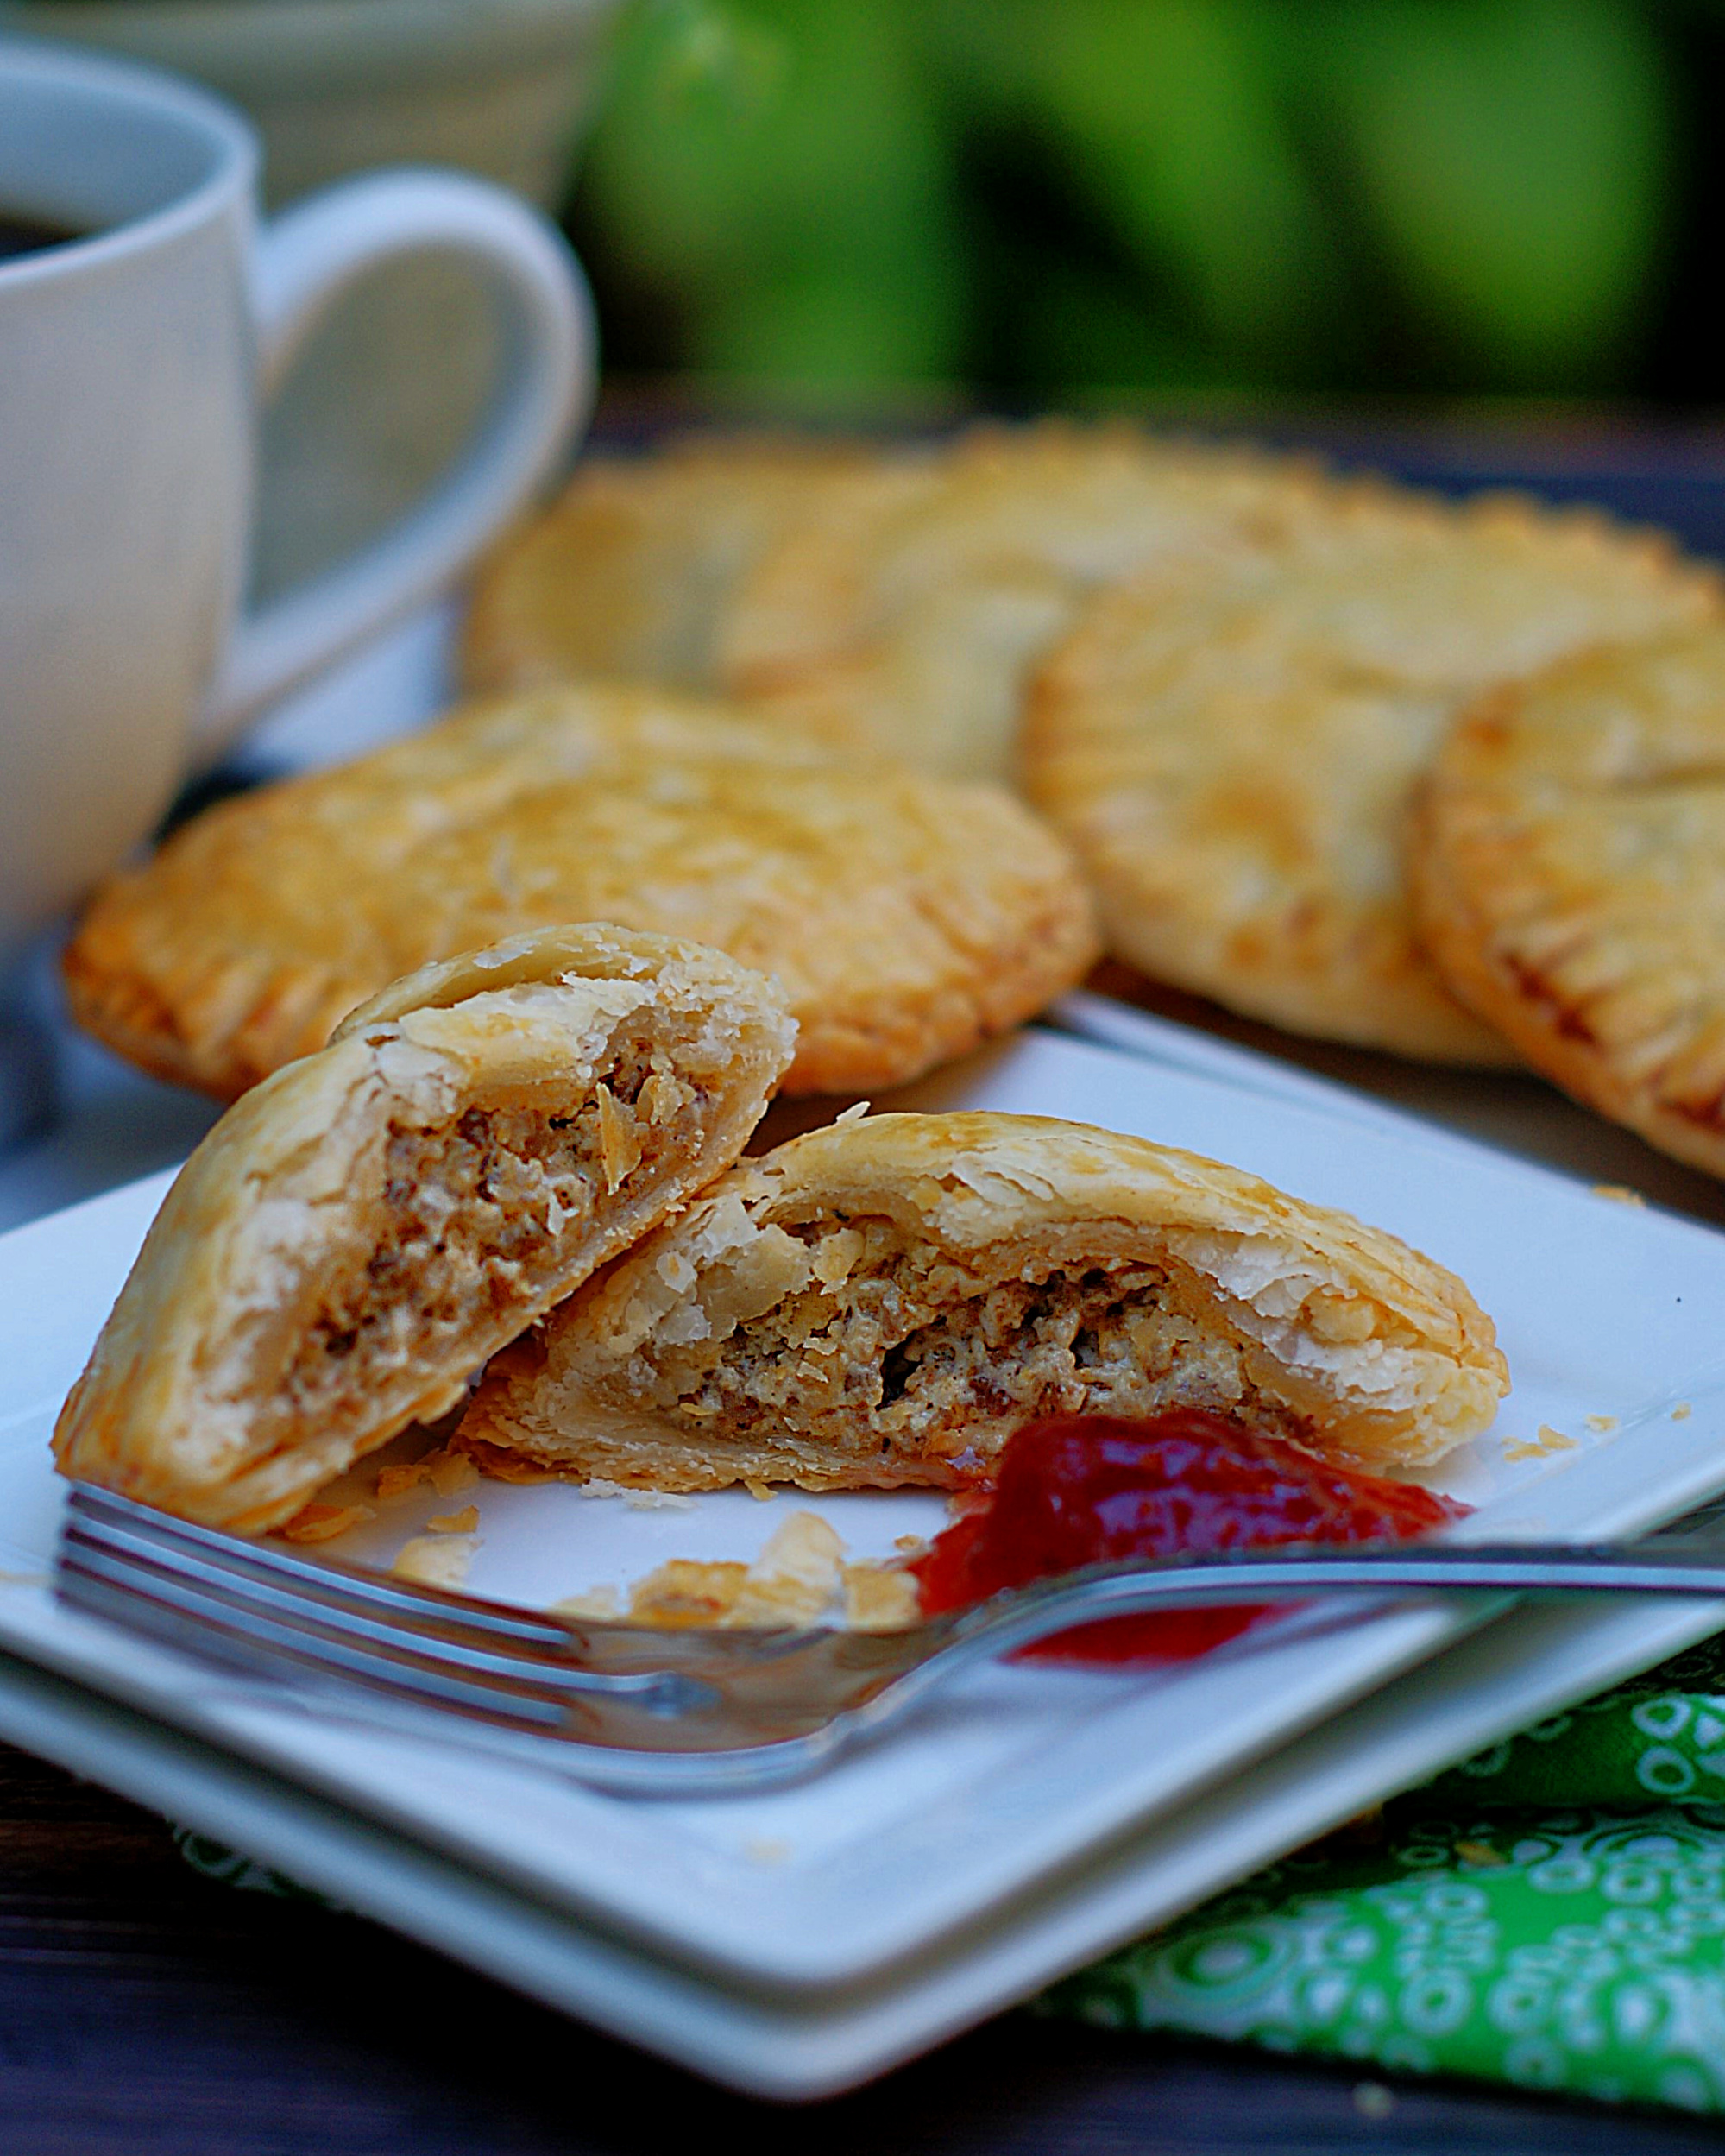 An up close of a cut sausage & cream cheese hand pie with jam.